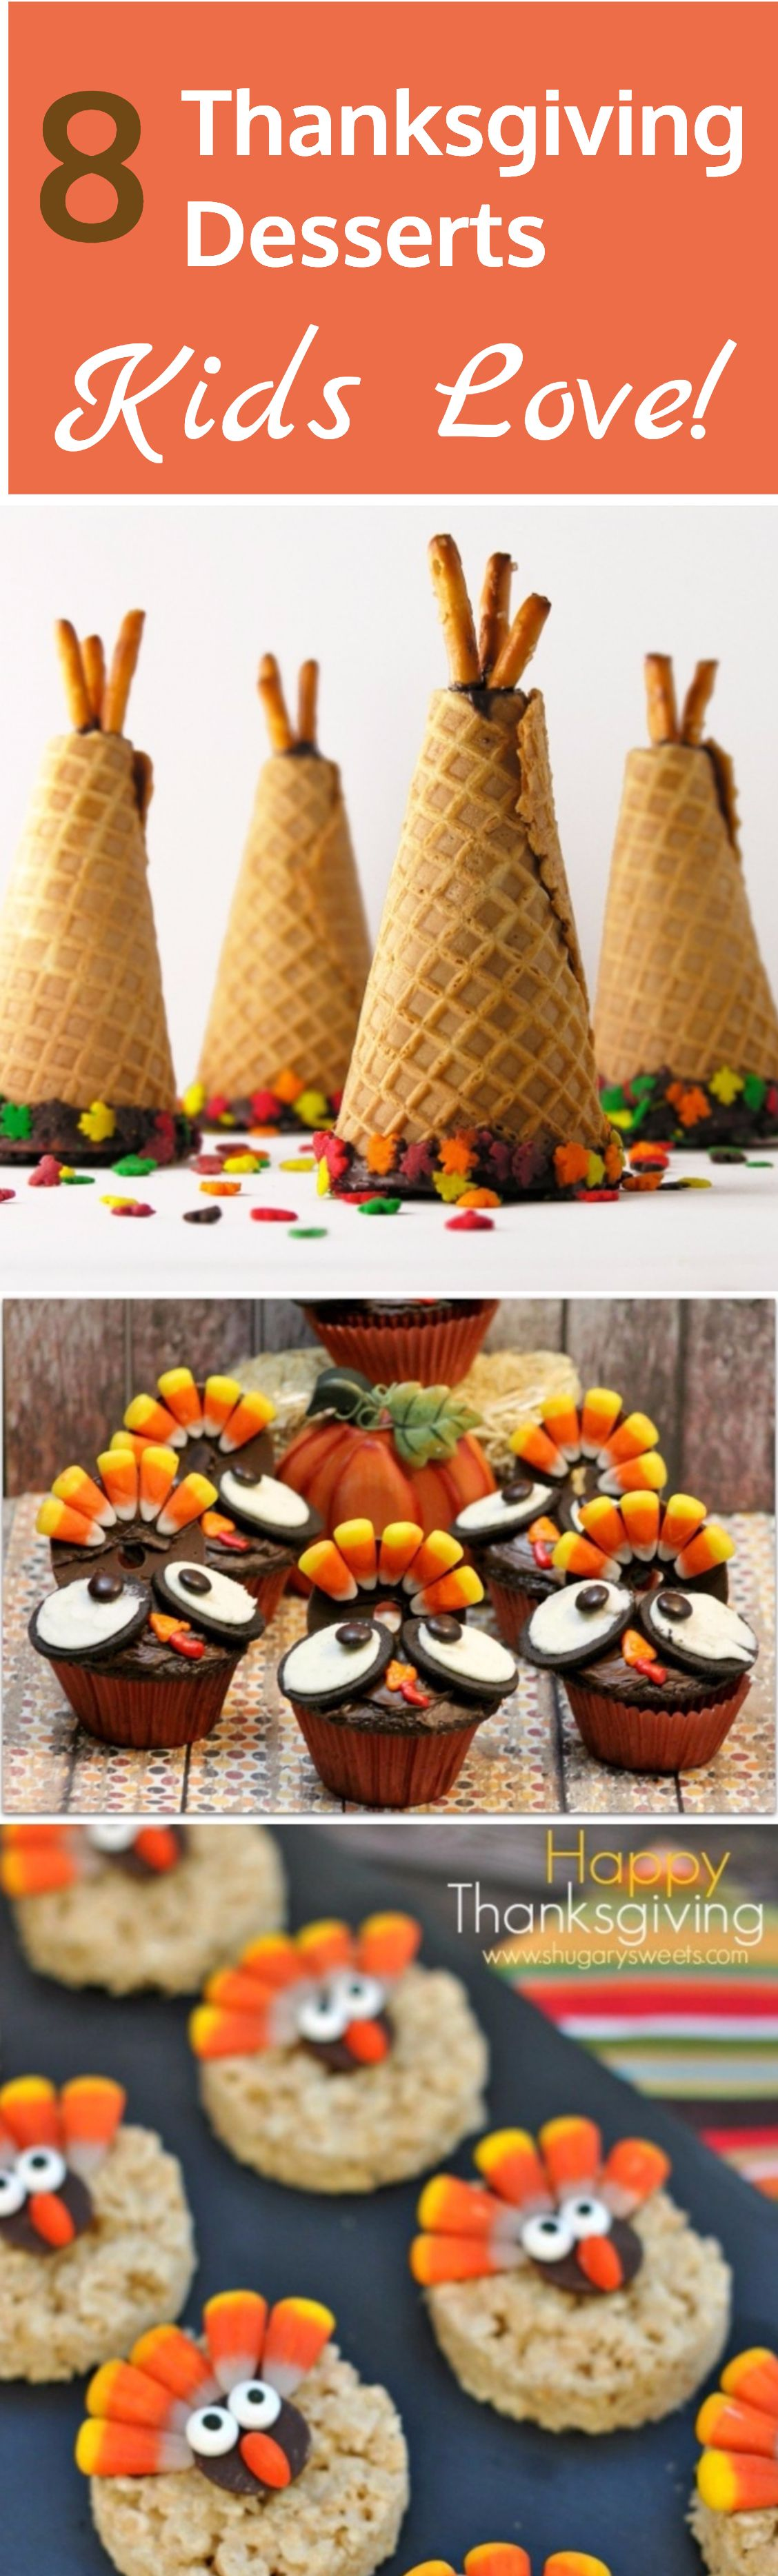 Thanksgiving Desserts Kids Love! #thanksgivingdesserts